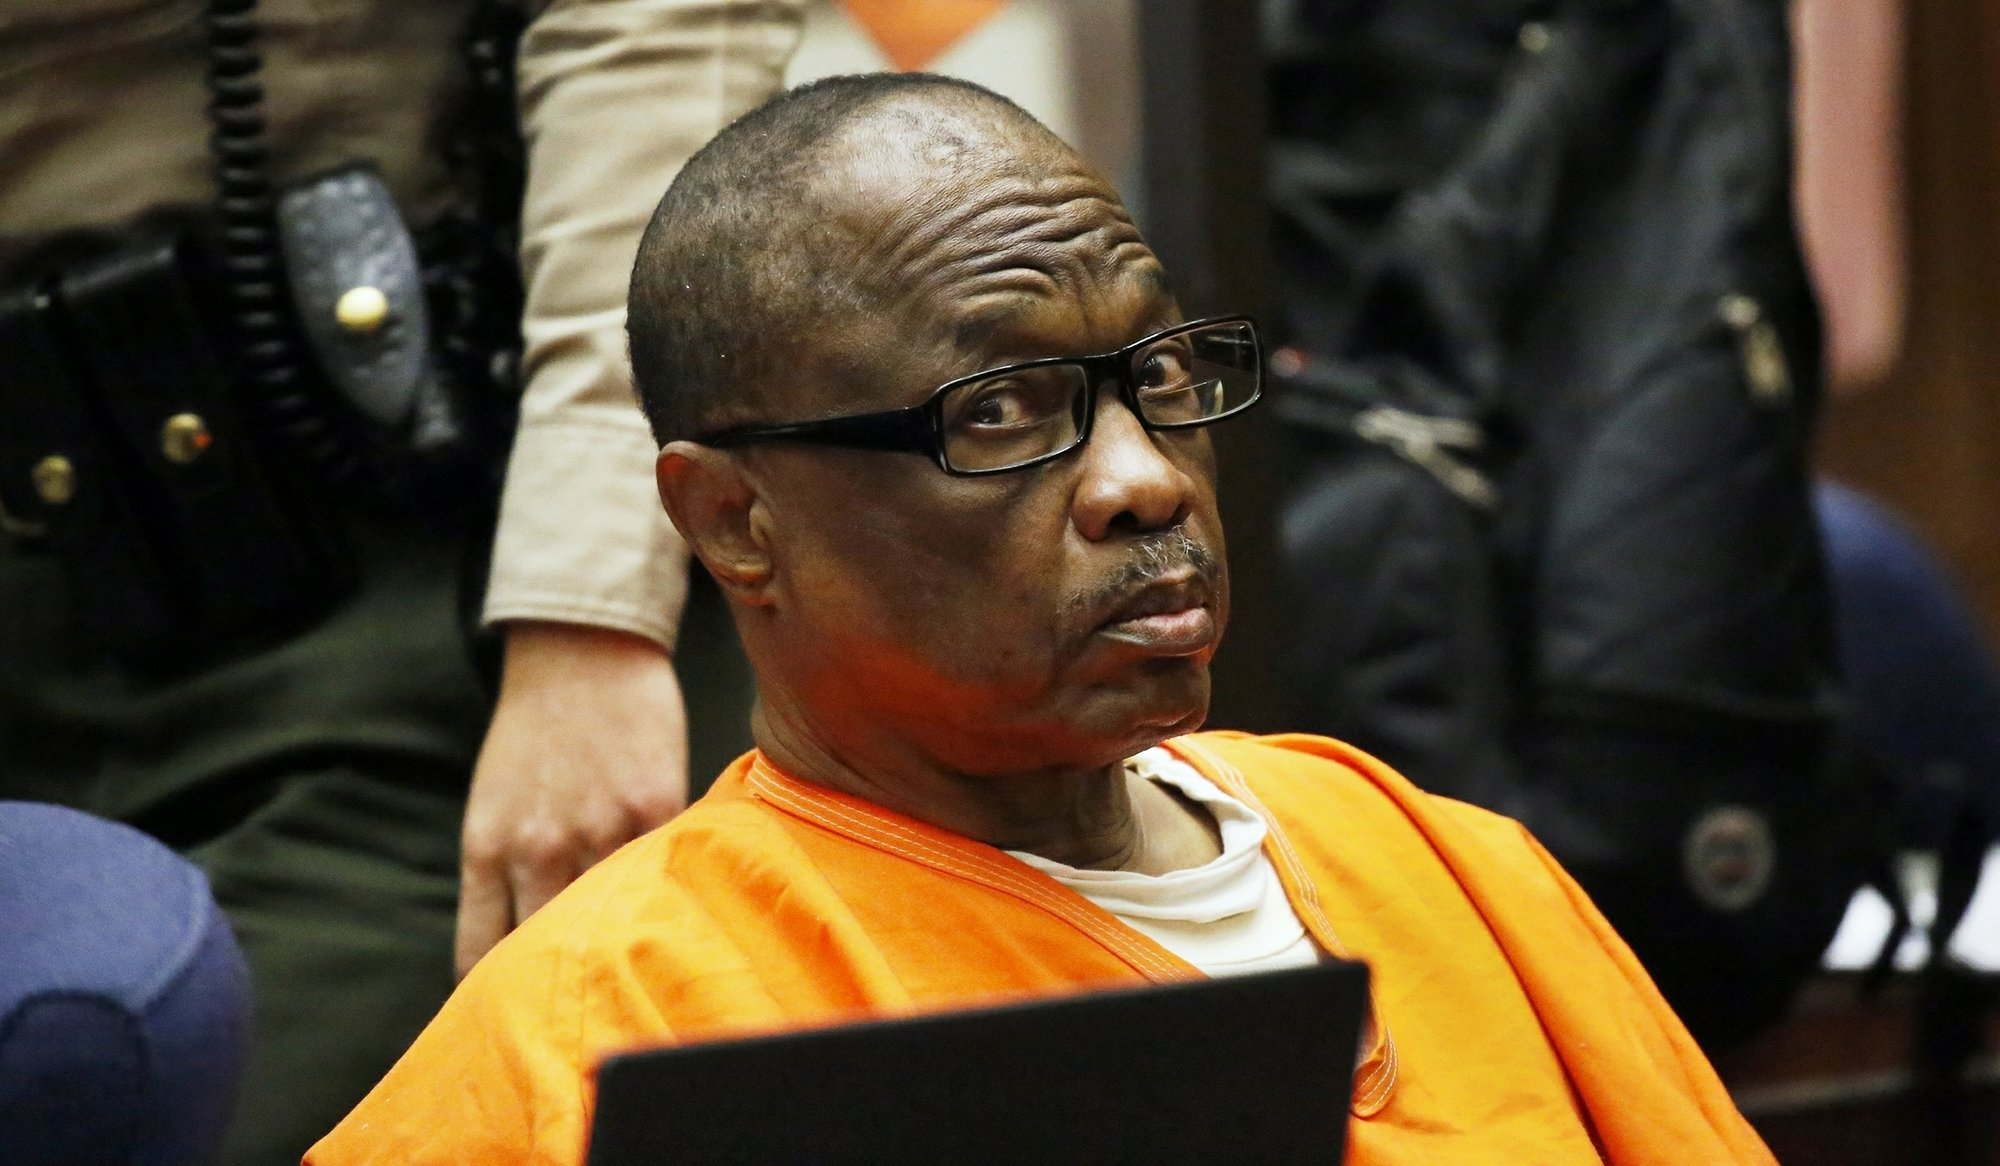 """Lonnie Franklin Jr., a convicted serial killer known as the """"Grim Sleeper,"""